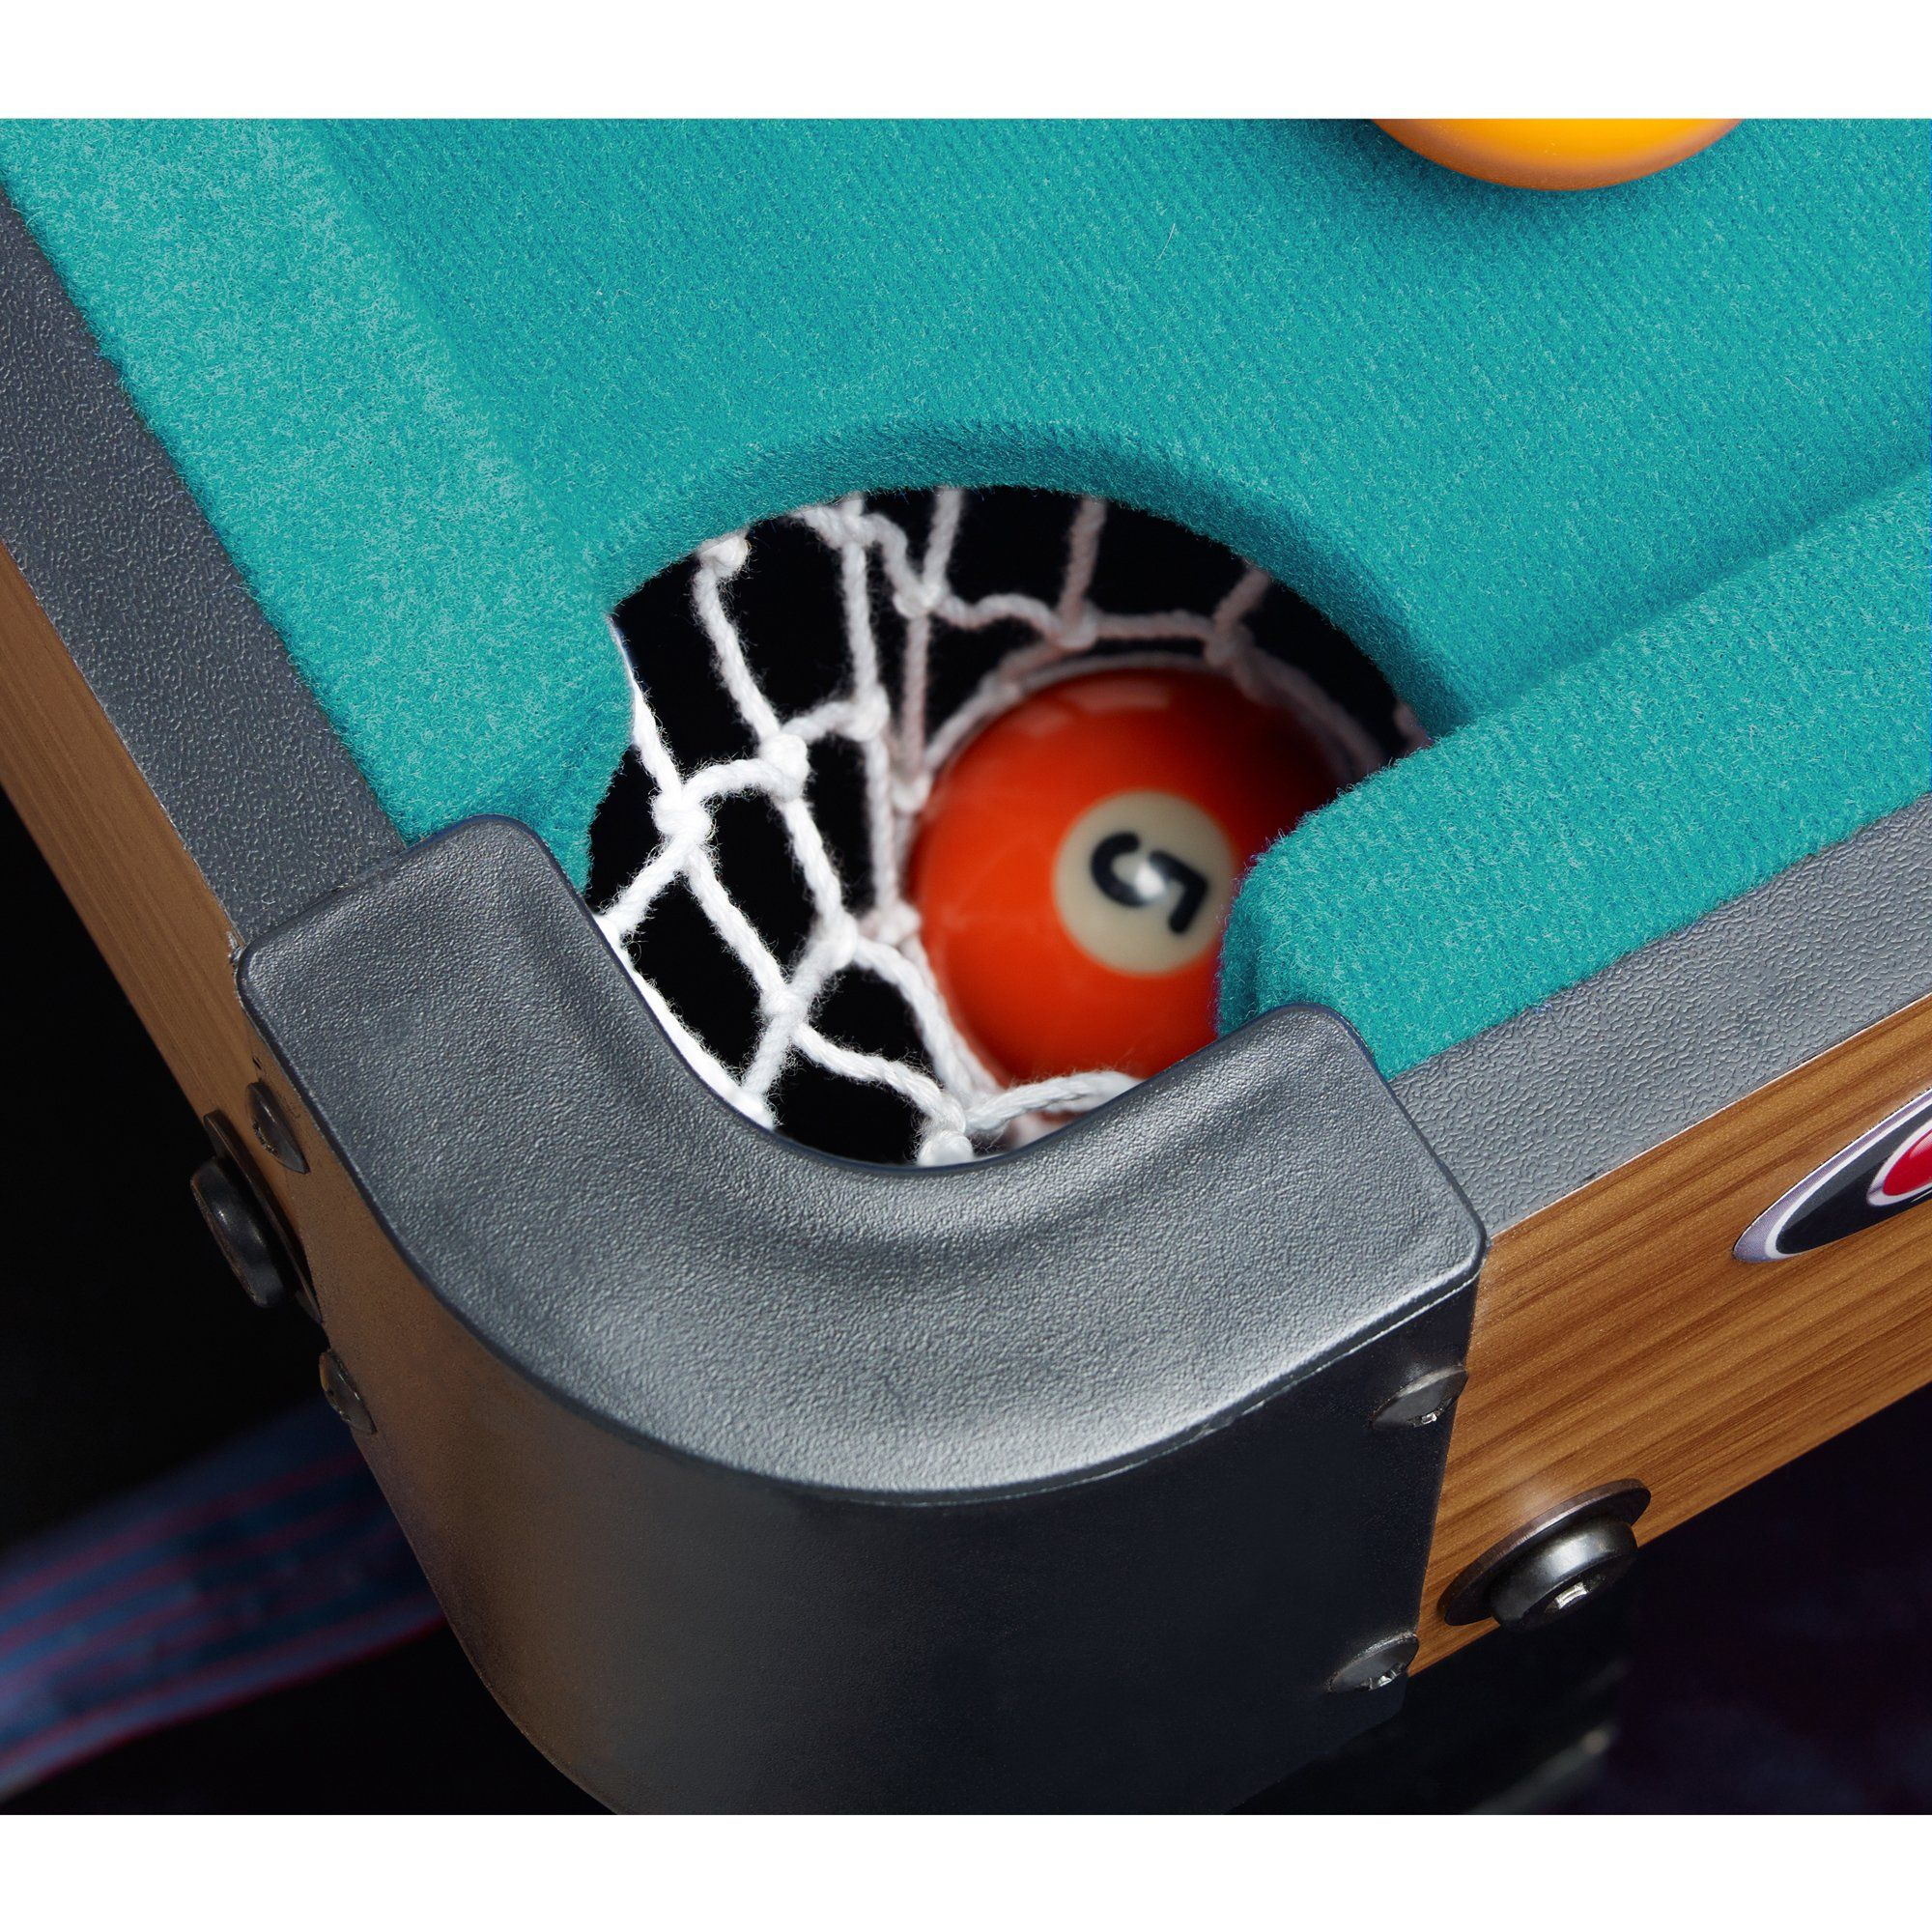 Playcraft Sport Bank Shot Inch Pool Table With Green Cloth For - 40 inch pool table